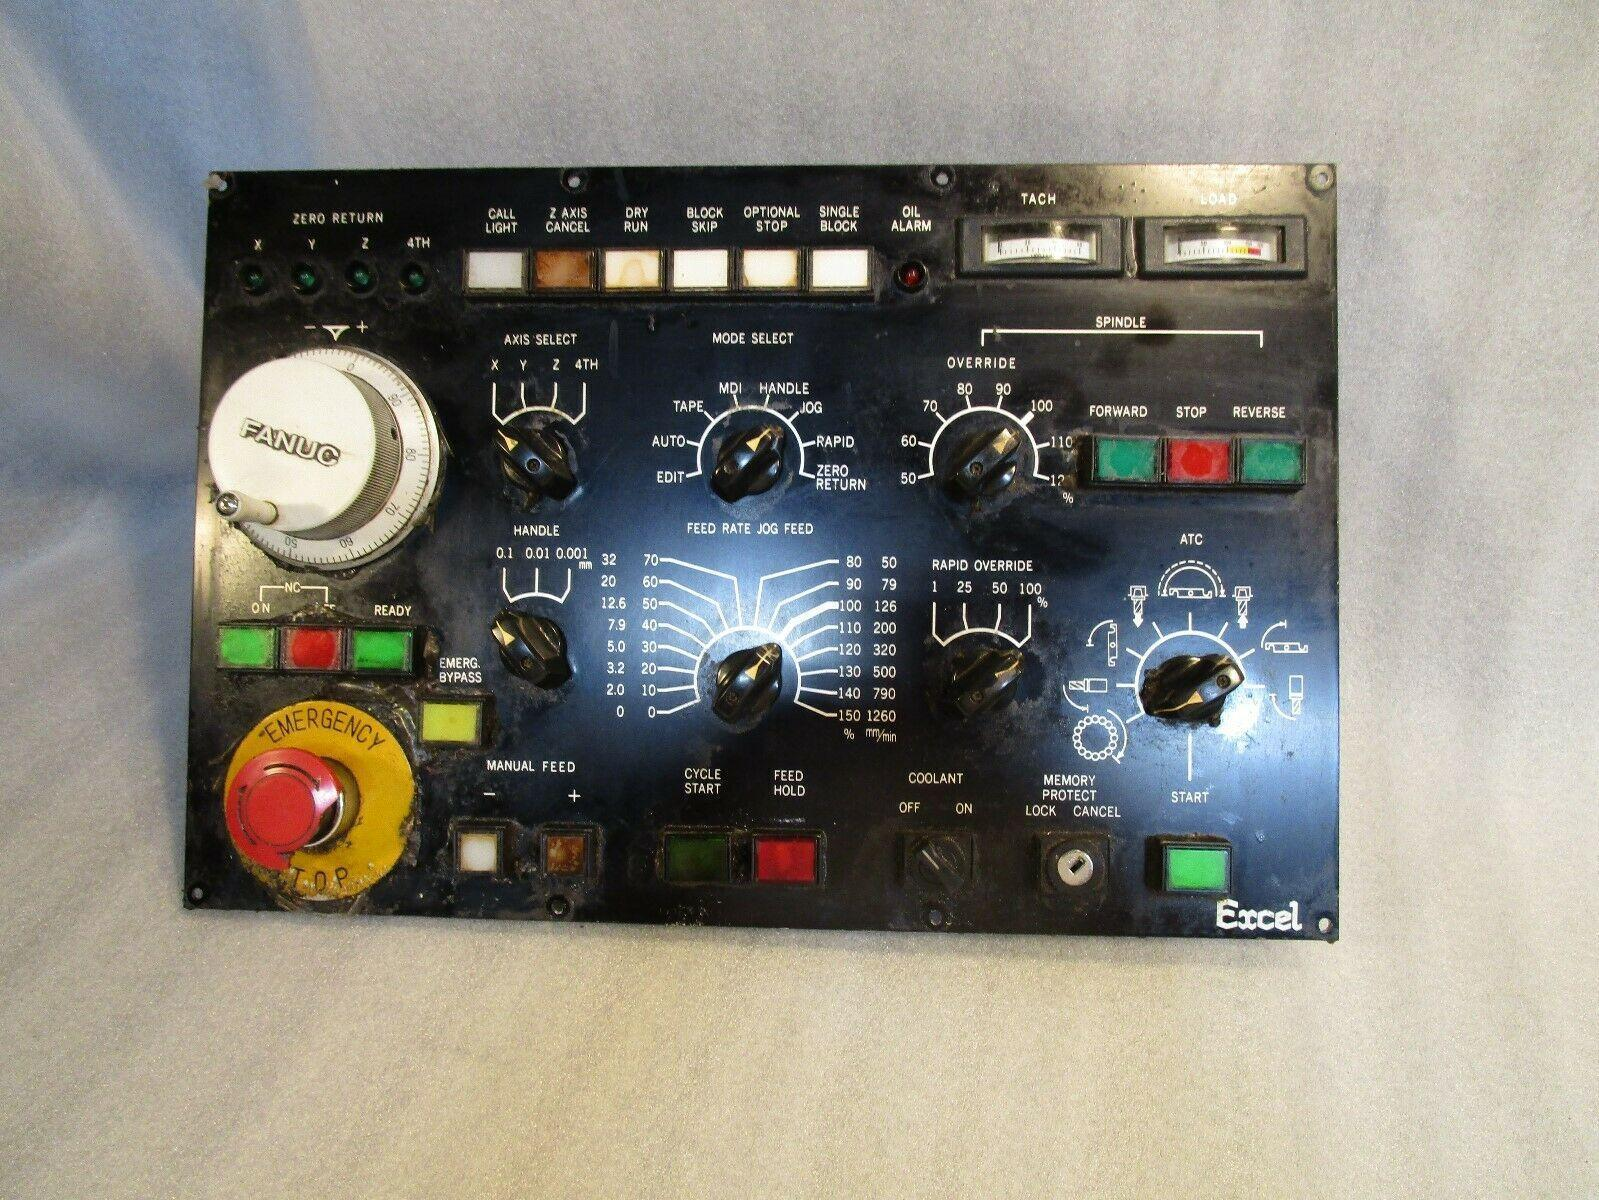 Fanuc 0M Lower Operator Panel Removed form an Excell Kiwa VMC